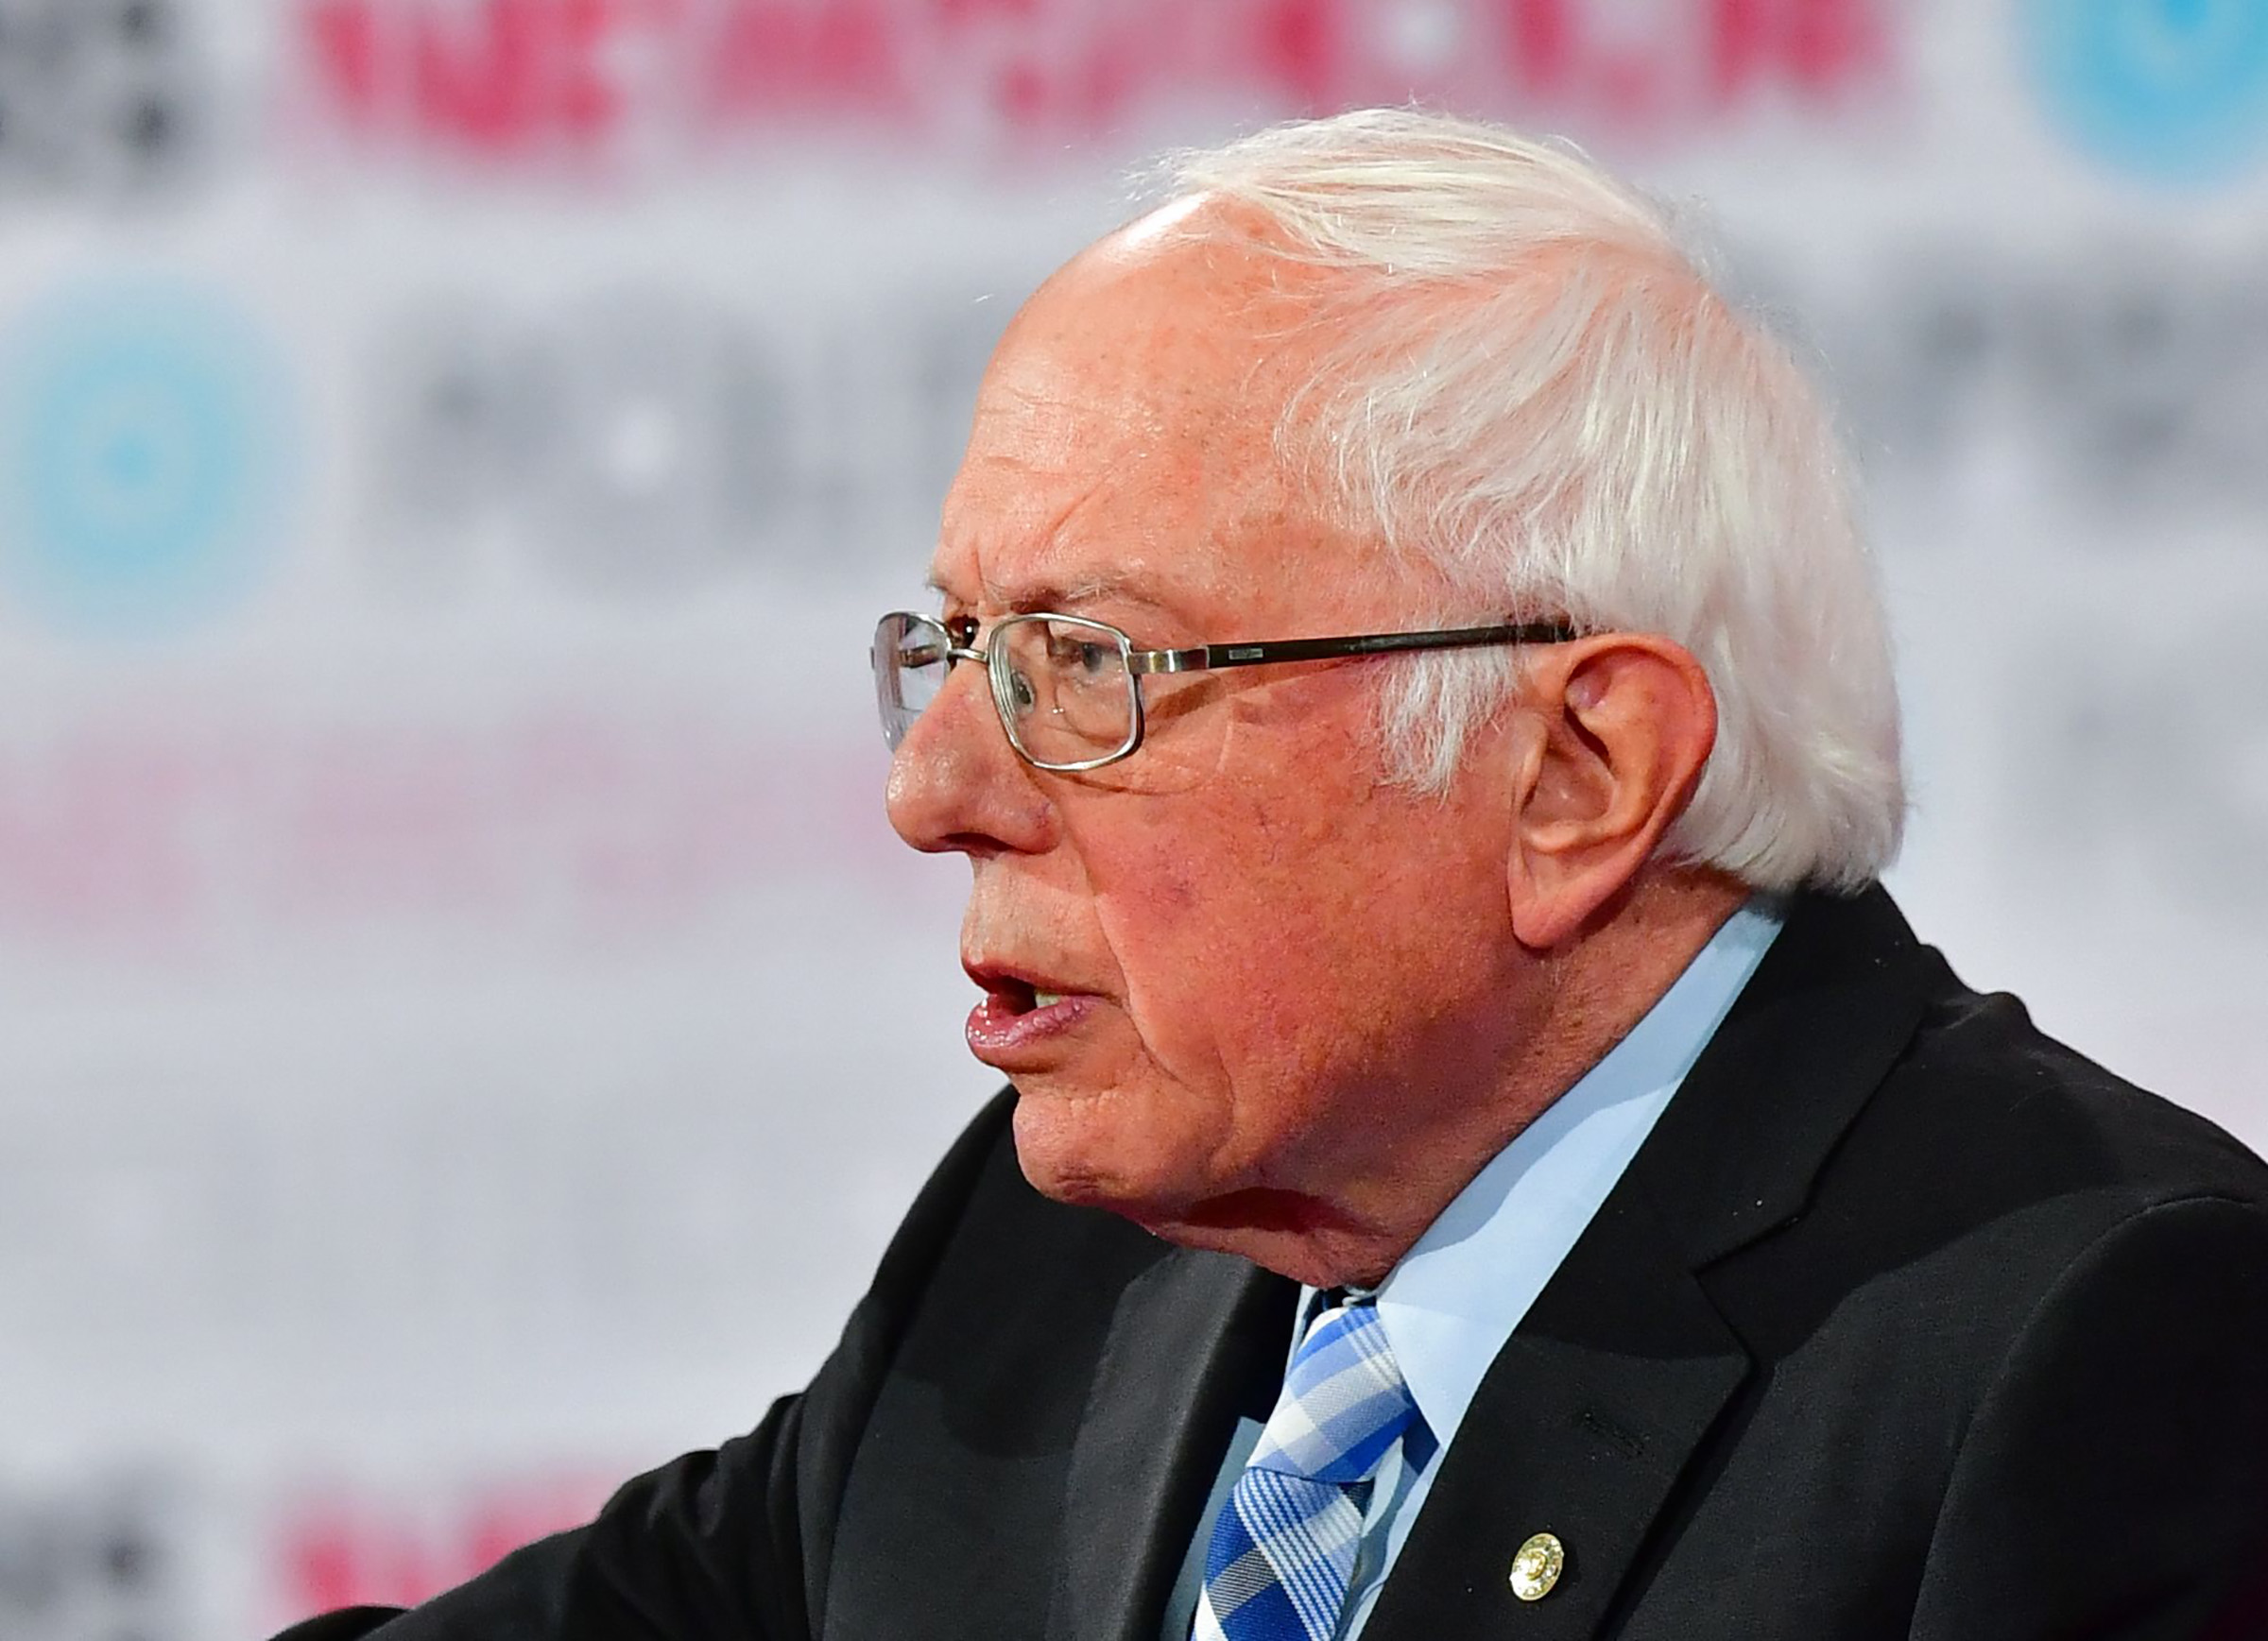 Democratic presidential hopeful Vermont Senator Bernie Sanders speaks on stage during the sixth Democratic primary debate of the 2020 presidential campaign season in Los Angeles, California on Dec. 19, 2019.